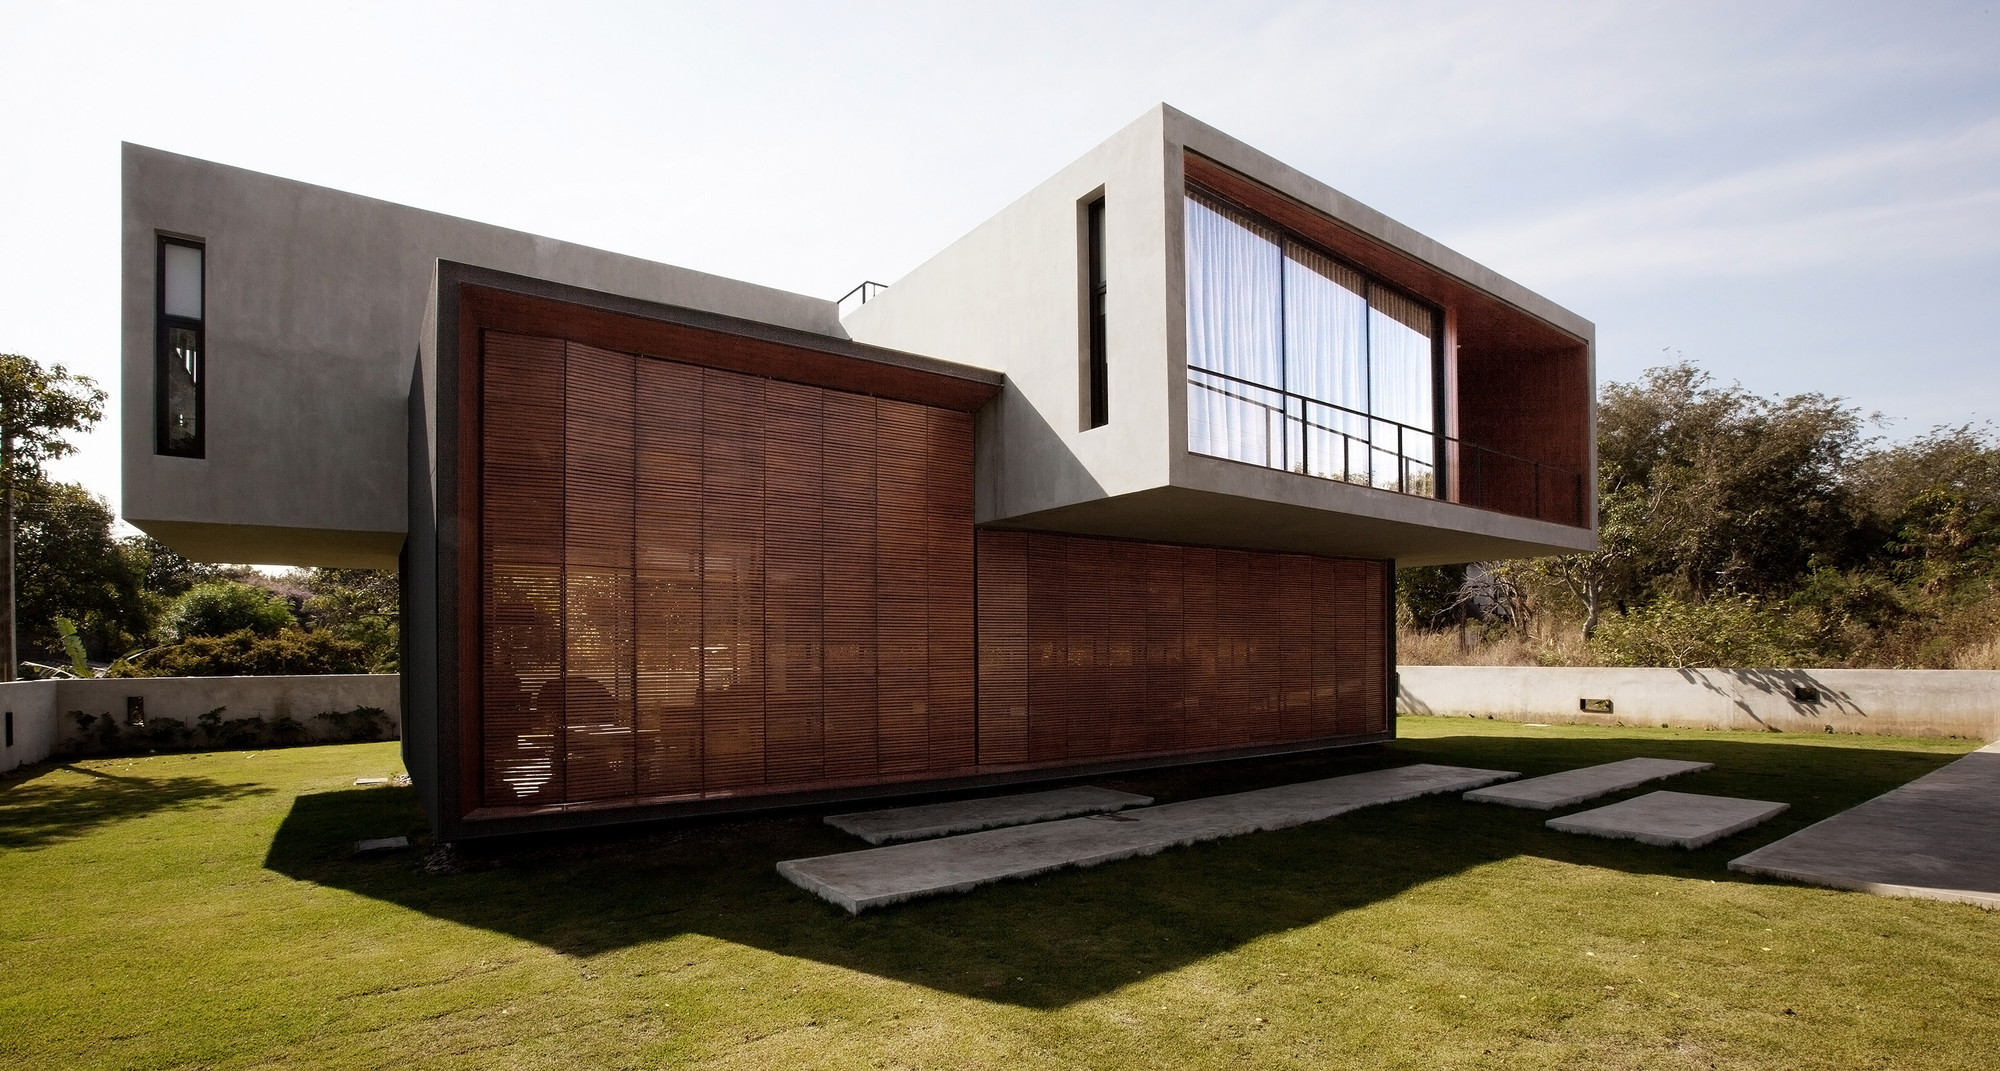 Terrific W House Idin Architects Archdaily Largest Home Design Picture Inspirations Pitcheantrous